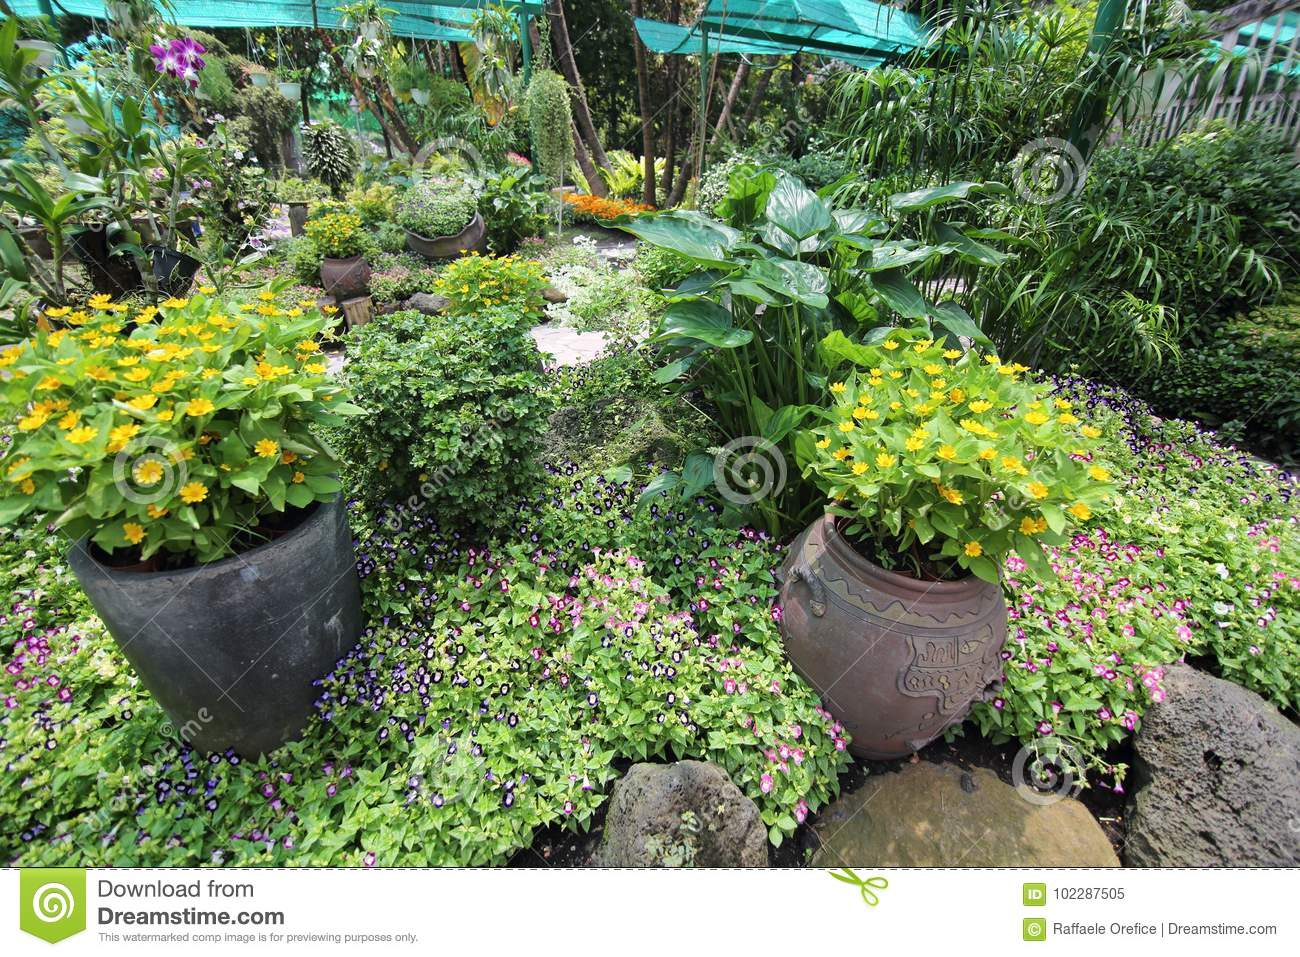 Plants at saigon zoo and botanical gardens stock image image of plant asia 102287505 for What time does the botanical gardens close